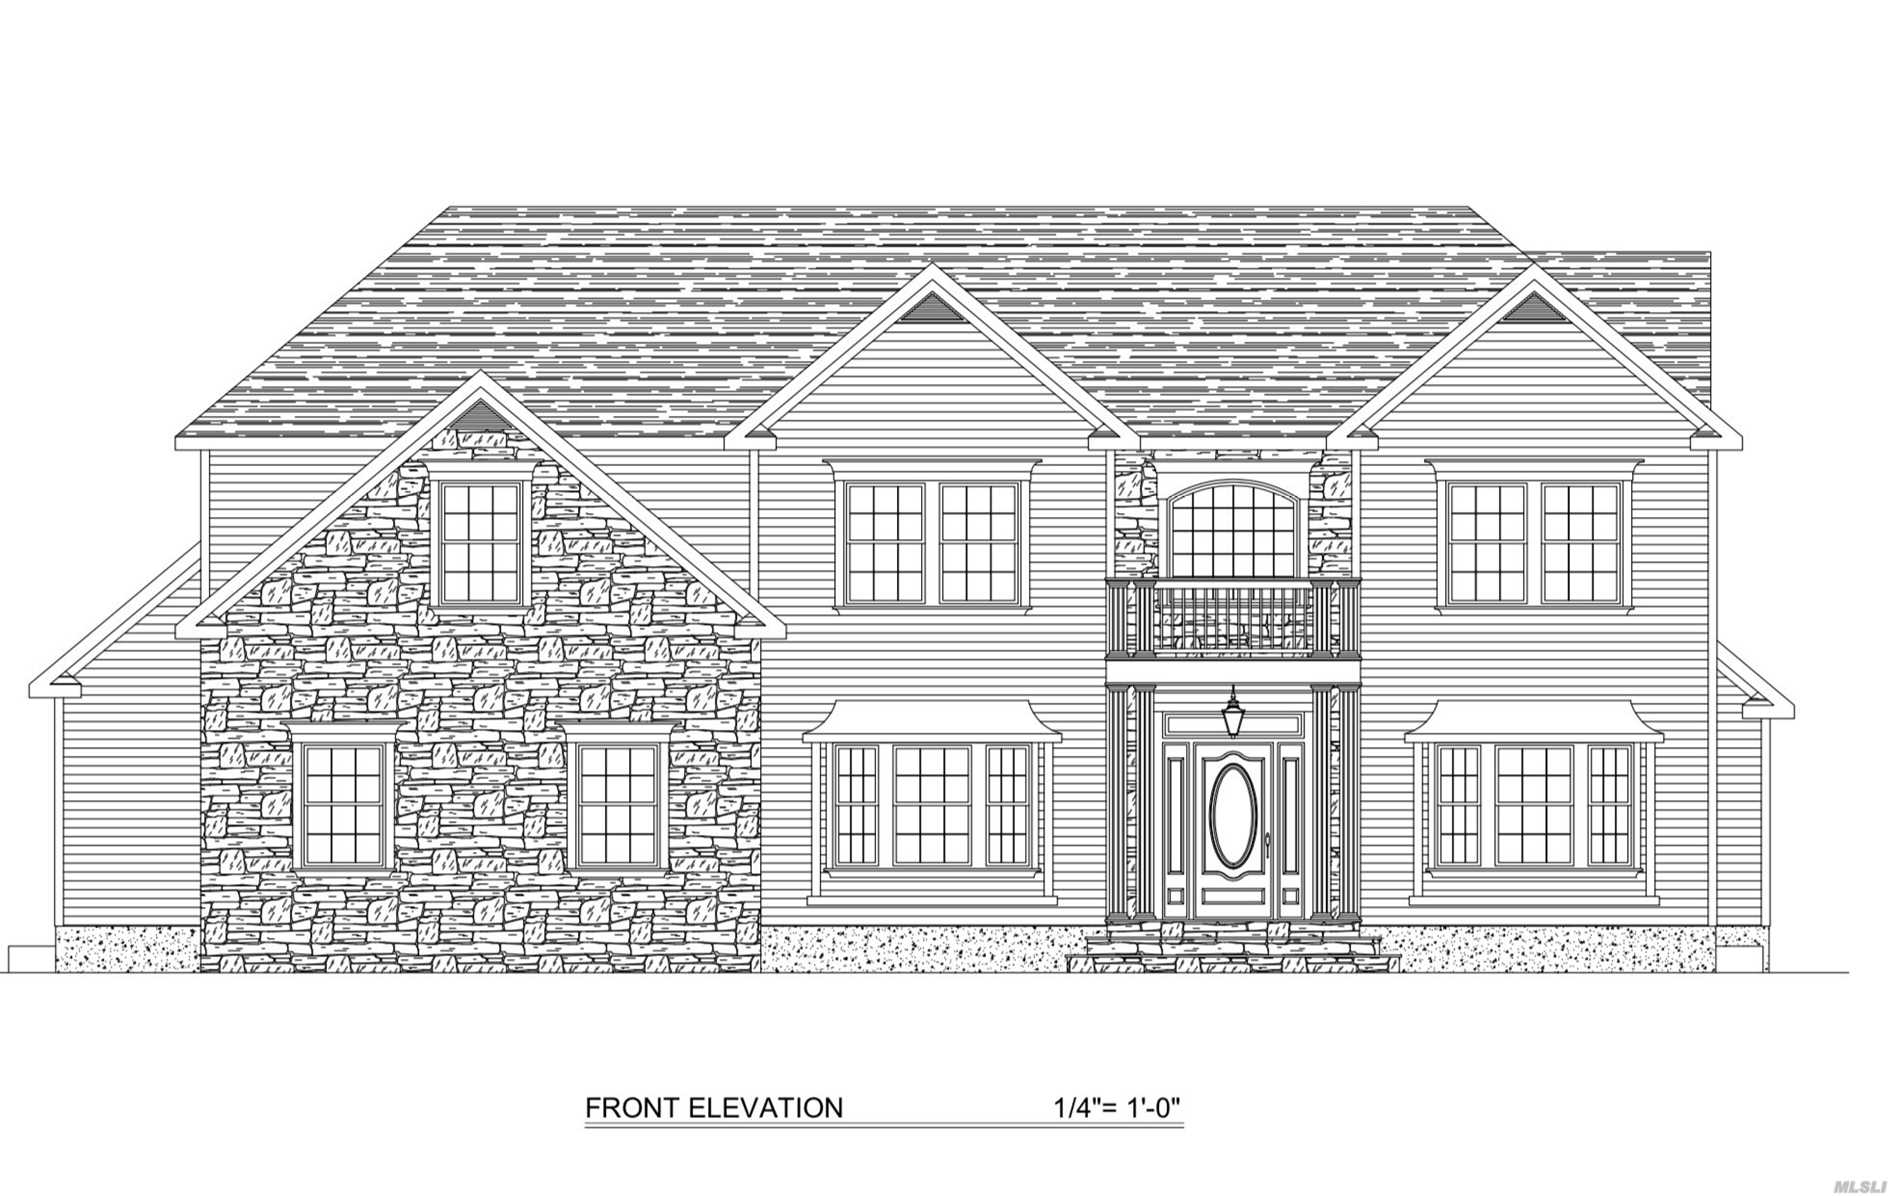 Will Be Ready Spring 2019. Make This Your Own/Customize With Your Desired Wish List! Approximately 3350 Sqft - With A Huge 10K Sqft Lot. Absolutely Stunning Colonial, Great Location. Custom Cabinetry And Granite Baths And Kitchen. This Home Features A Grand Open Foyer & Open Concept Layout. Big Living Room, Dining W/Fireplace, High Ceilings, Total 5 Big Bedrooms 4 Bathroom. Huge Master Suite. 1, 5 Car Garage.Kitchen With Granite Counters And A Big Island. Basement With A Separate Outside Entrance